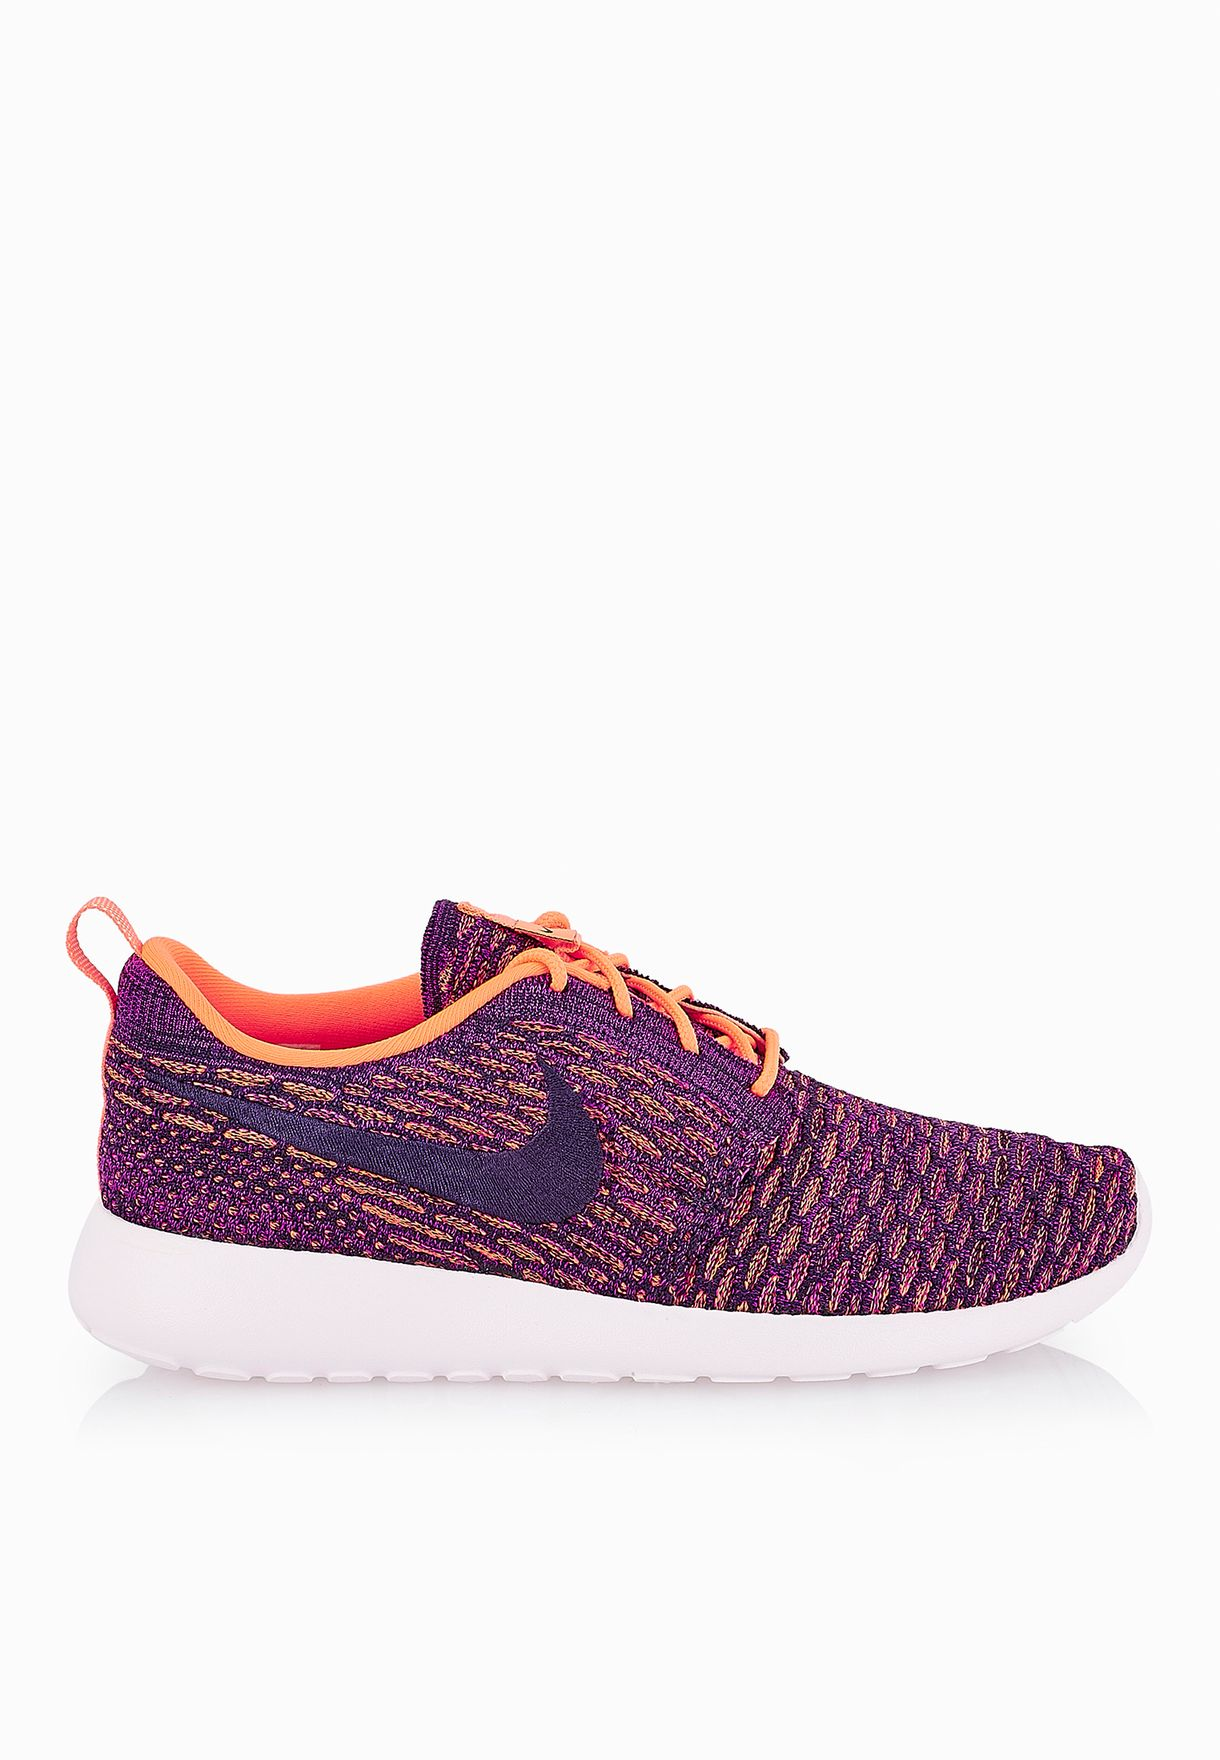 info for a5967 ae86b Roshe One Flyknit